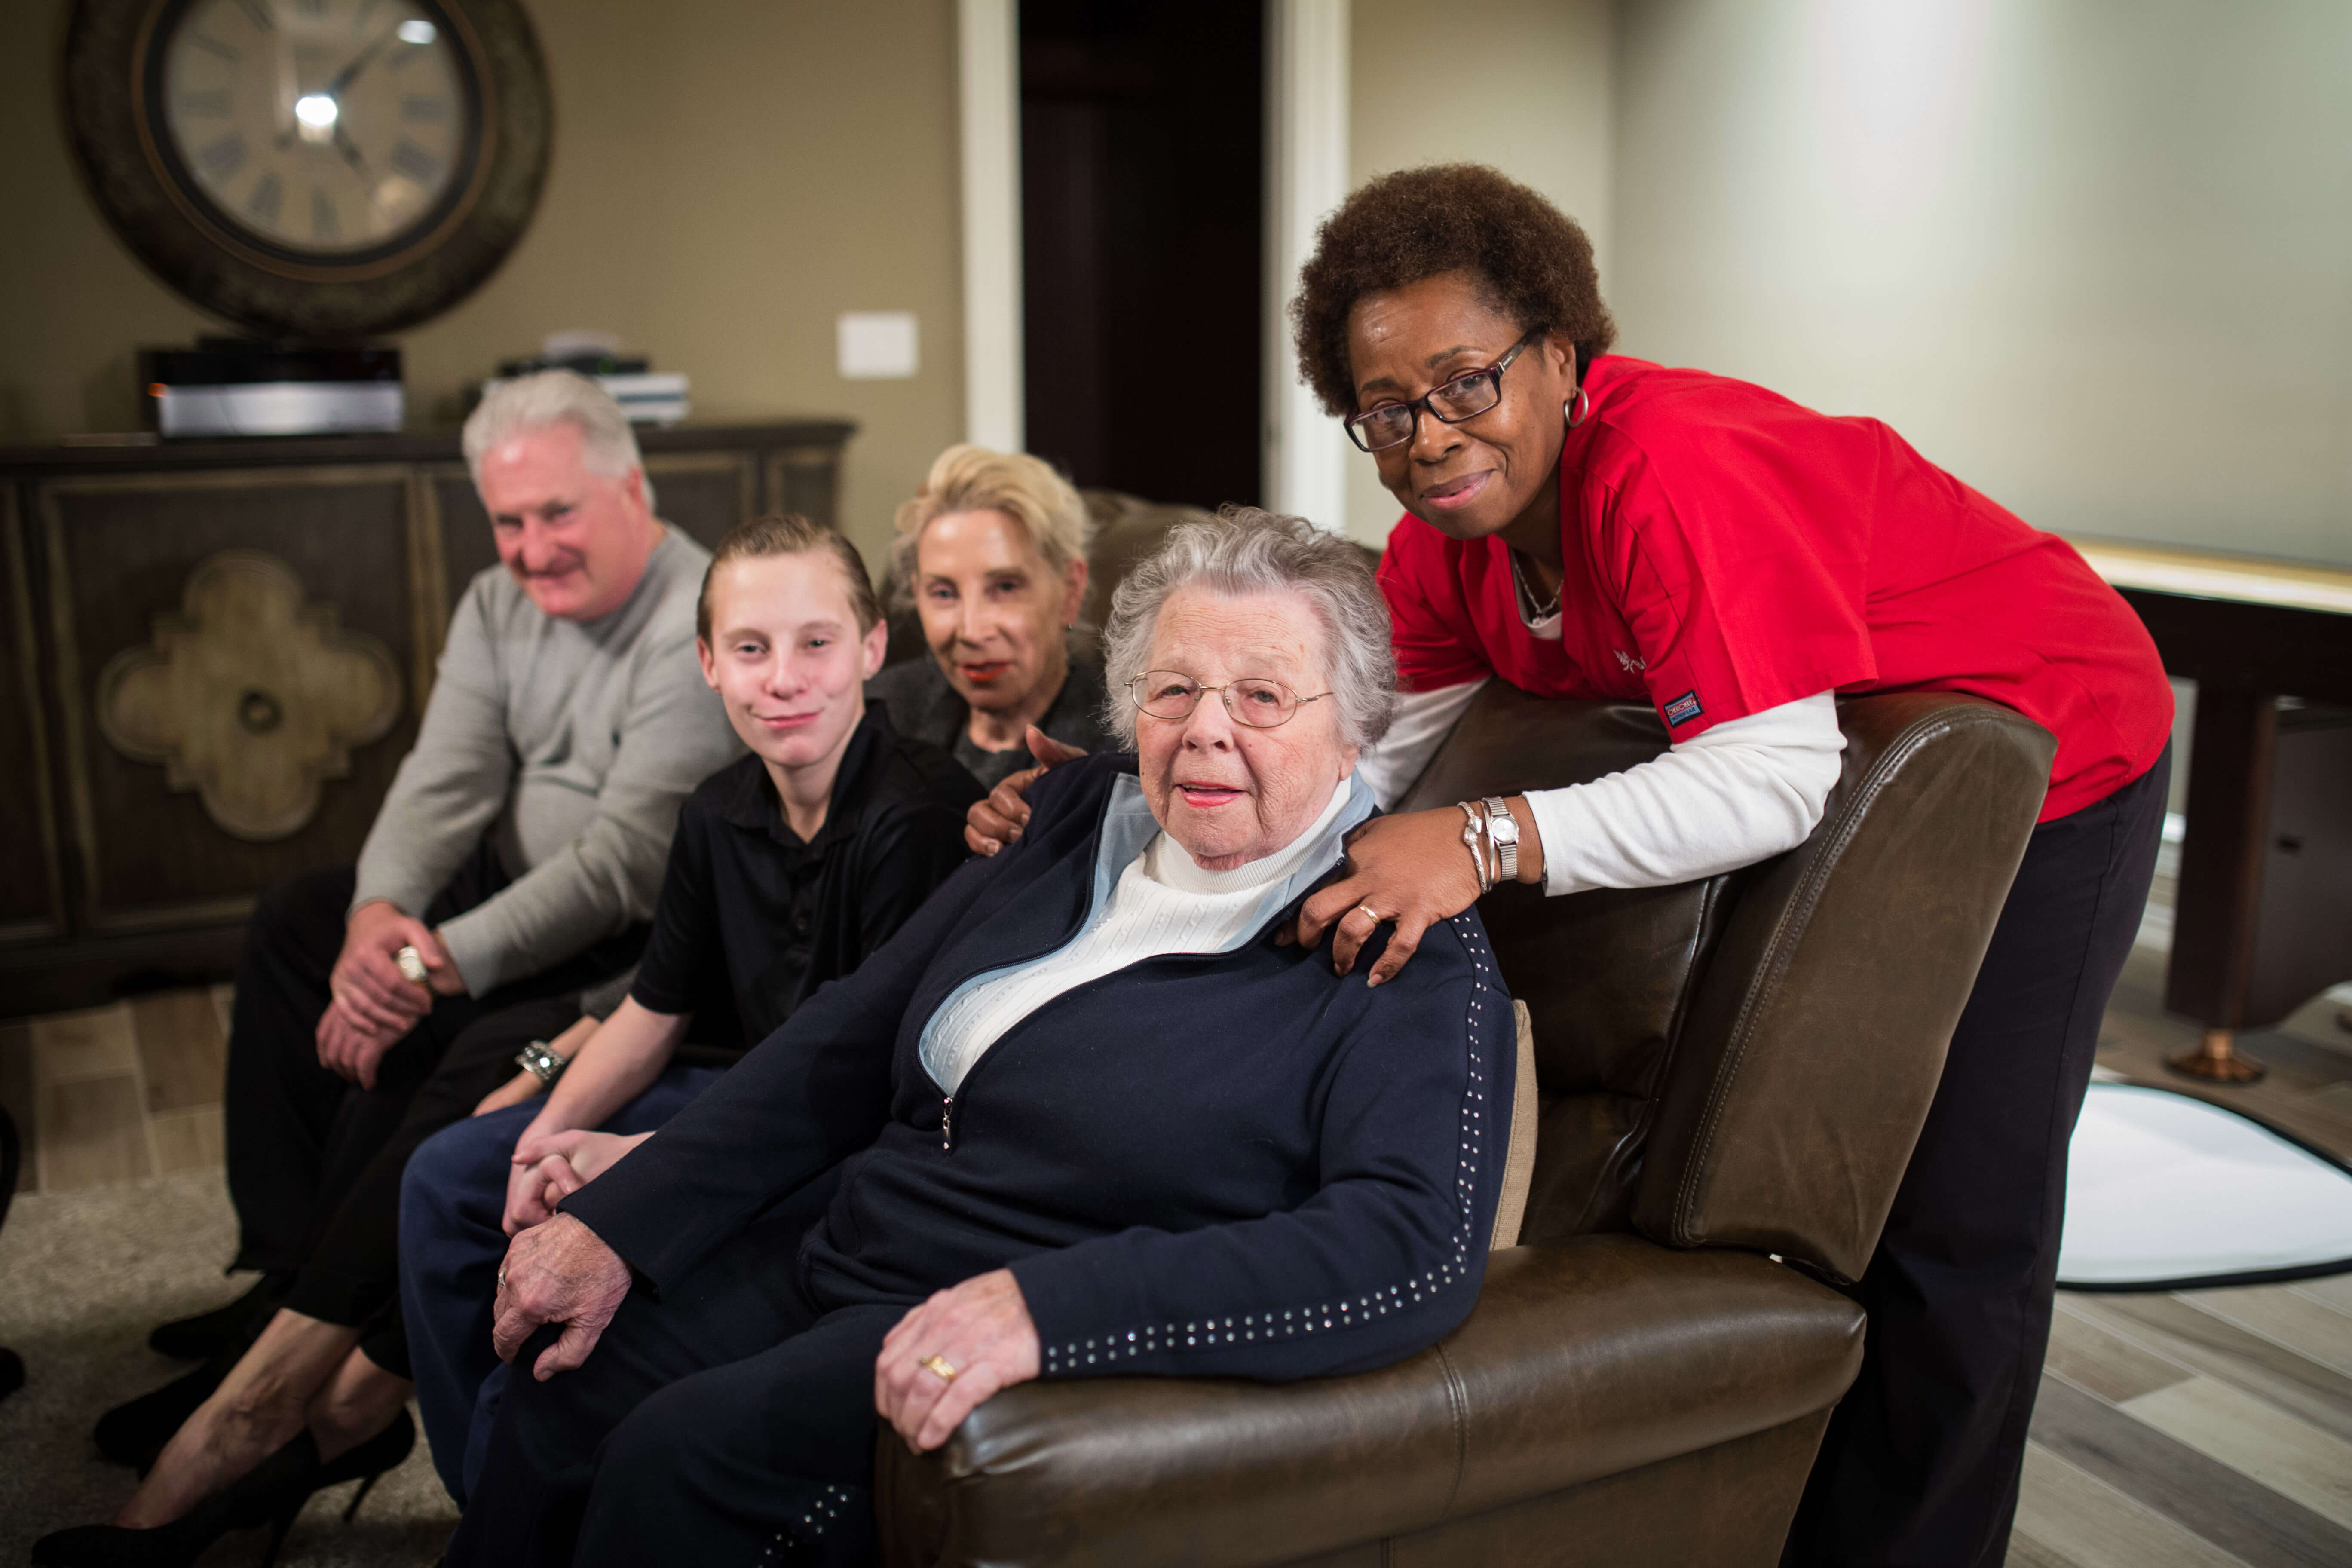 An aide who provides respite care to a senior poses with the senior and their family.